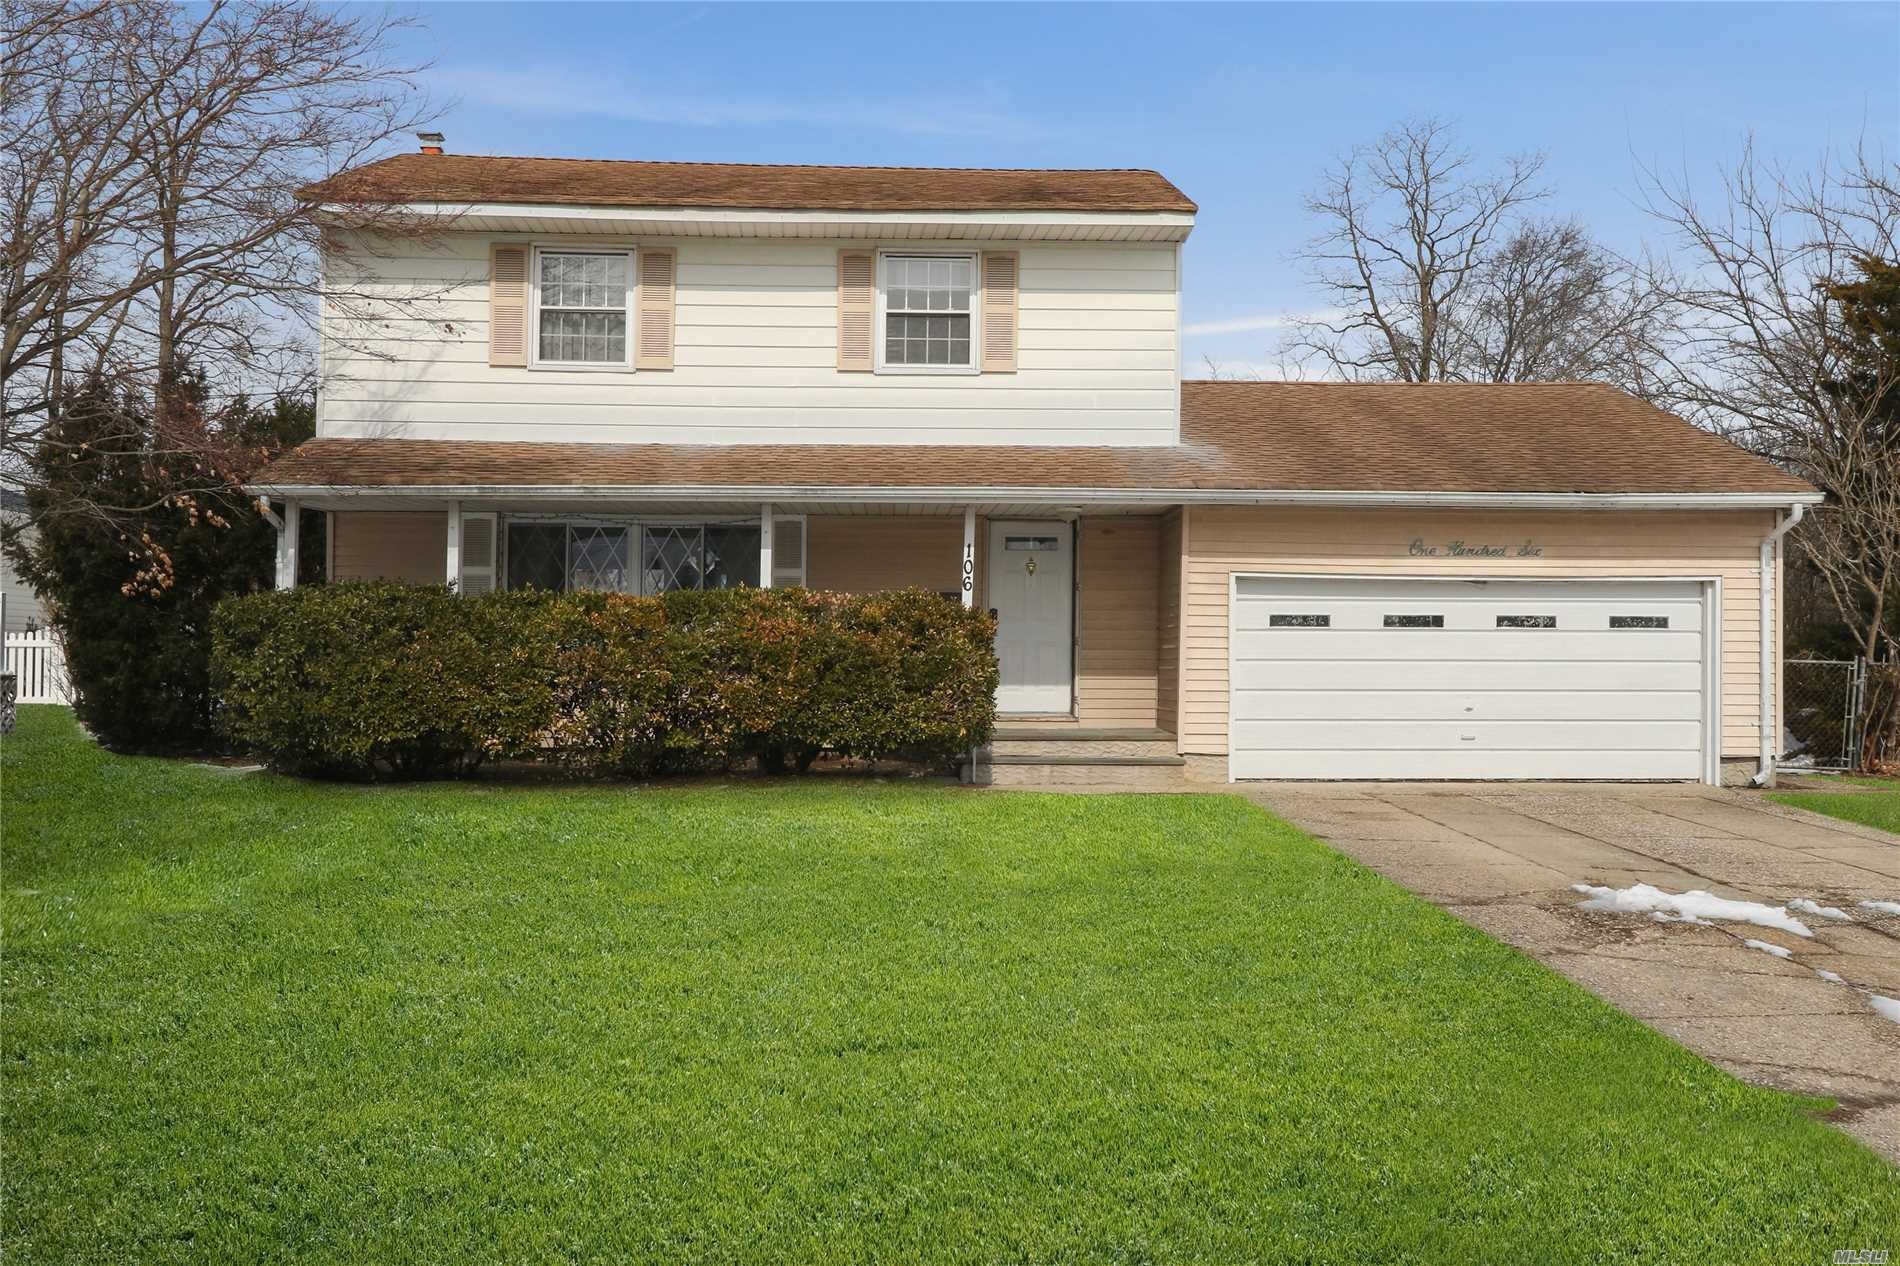 Great Opportunity in this Desirable Commack School District Colonial Style House! Liv Rm, FDR, EIK, Den on Main Floor. Wood Floors, Vinyl Siding, CAC, Ceramic Entry Foyer. Flat 1/4 Acre Property in the Middle of the Block.Needs TLC!